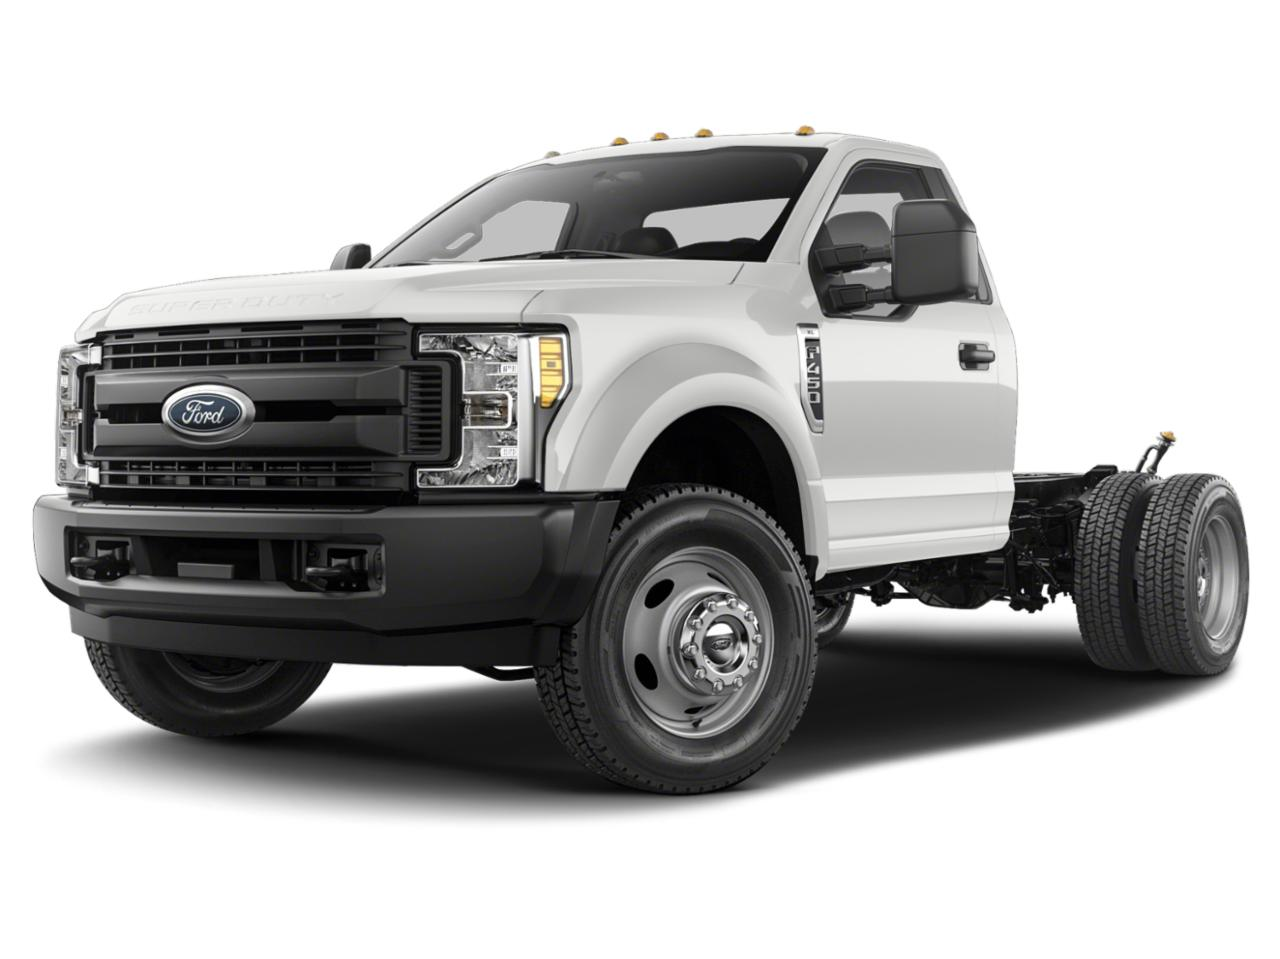 2018 Ford Super Duty F-450 DRW Vehicle Photo in Wendell, NC 27591